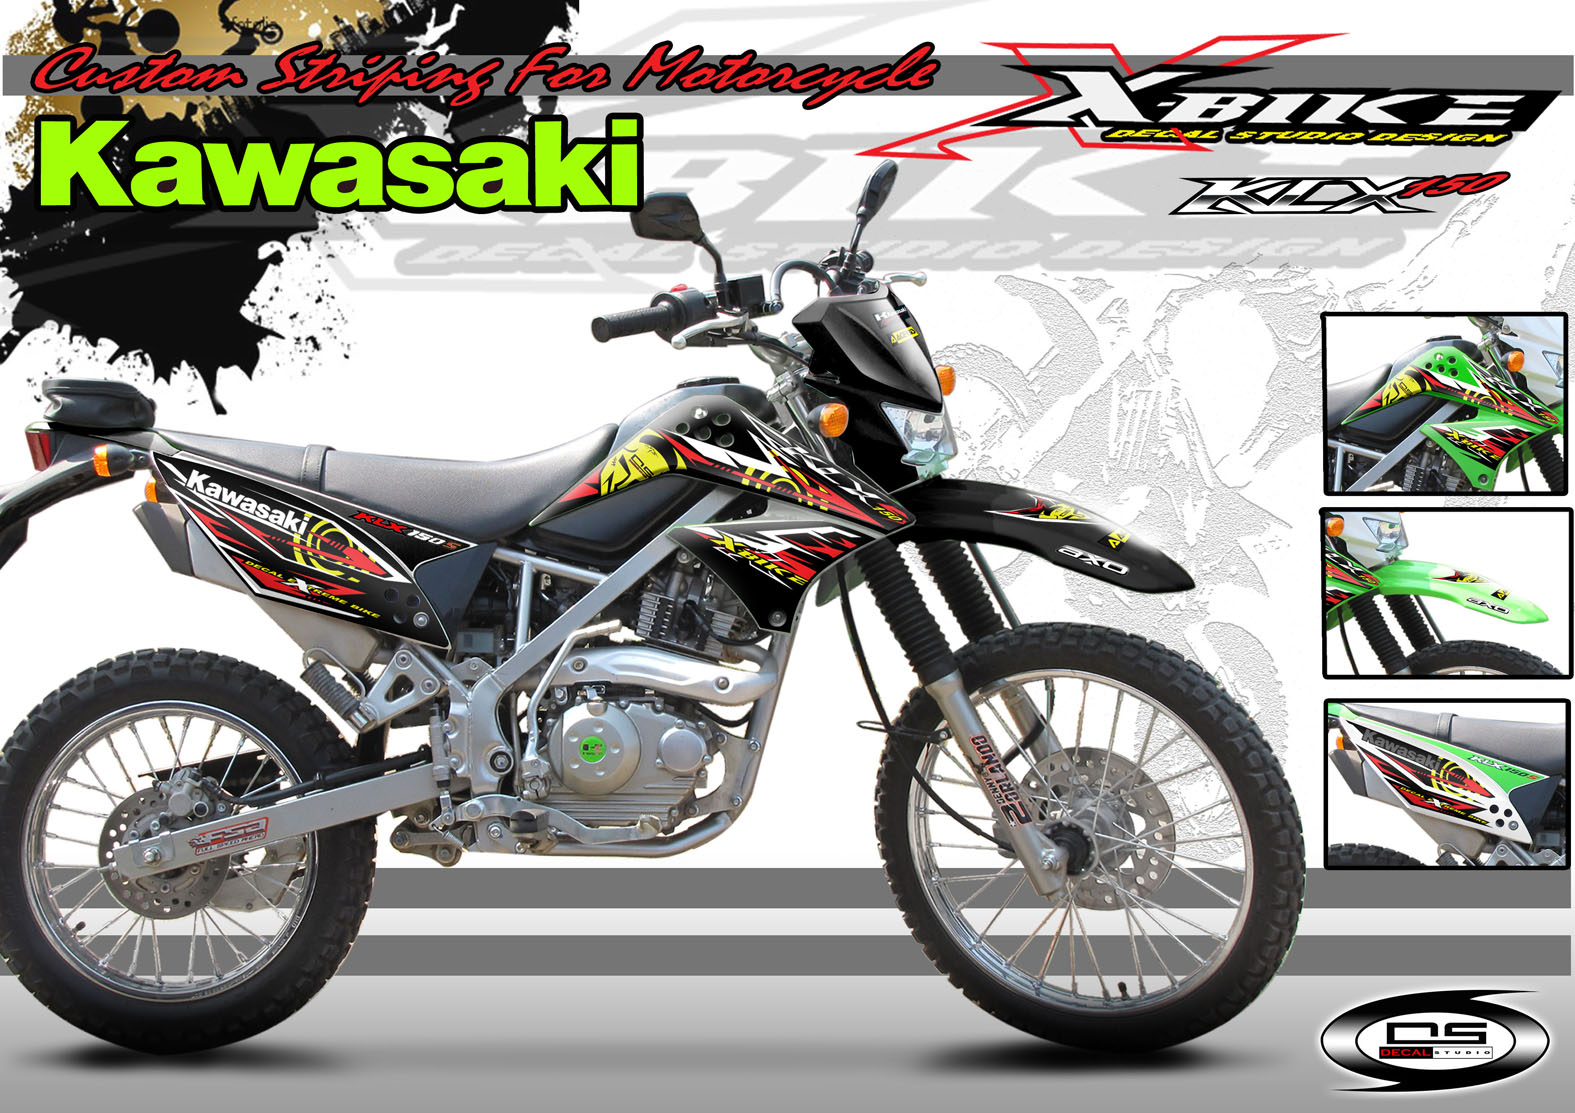 Kawasaki KLX 150 Decals 1575 x 1113 · 423 kB · jpeg